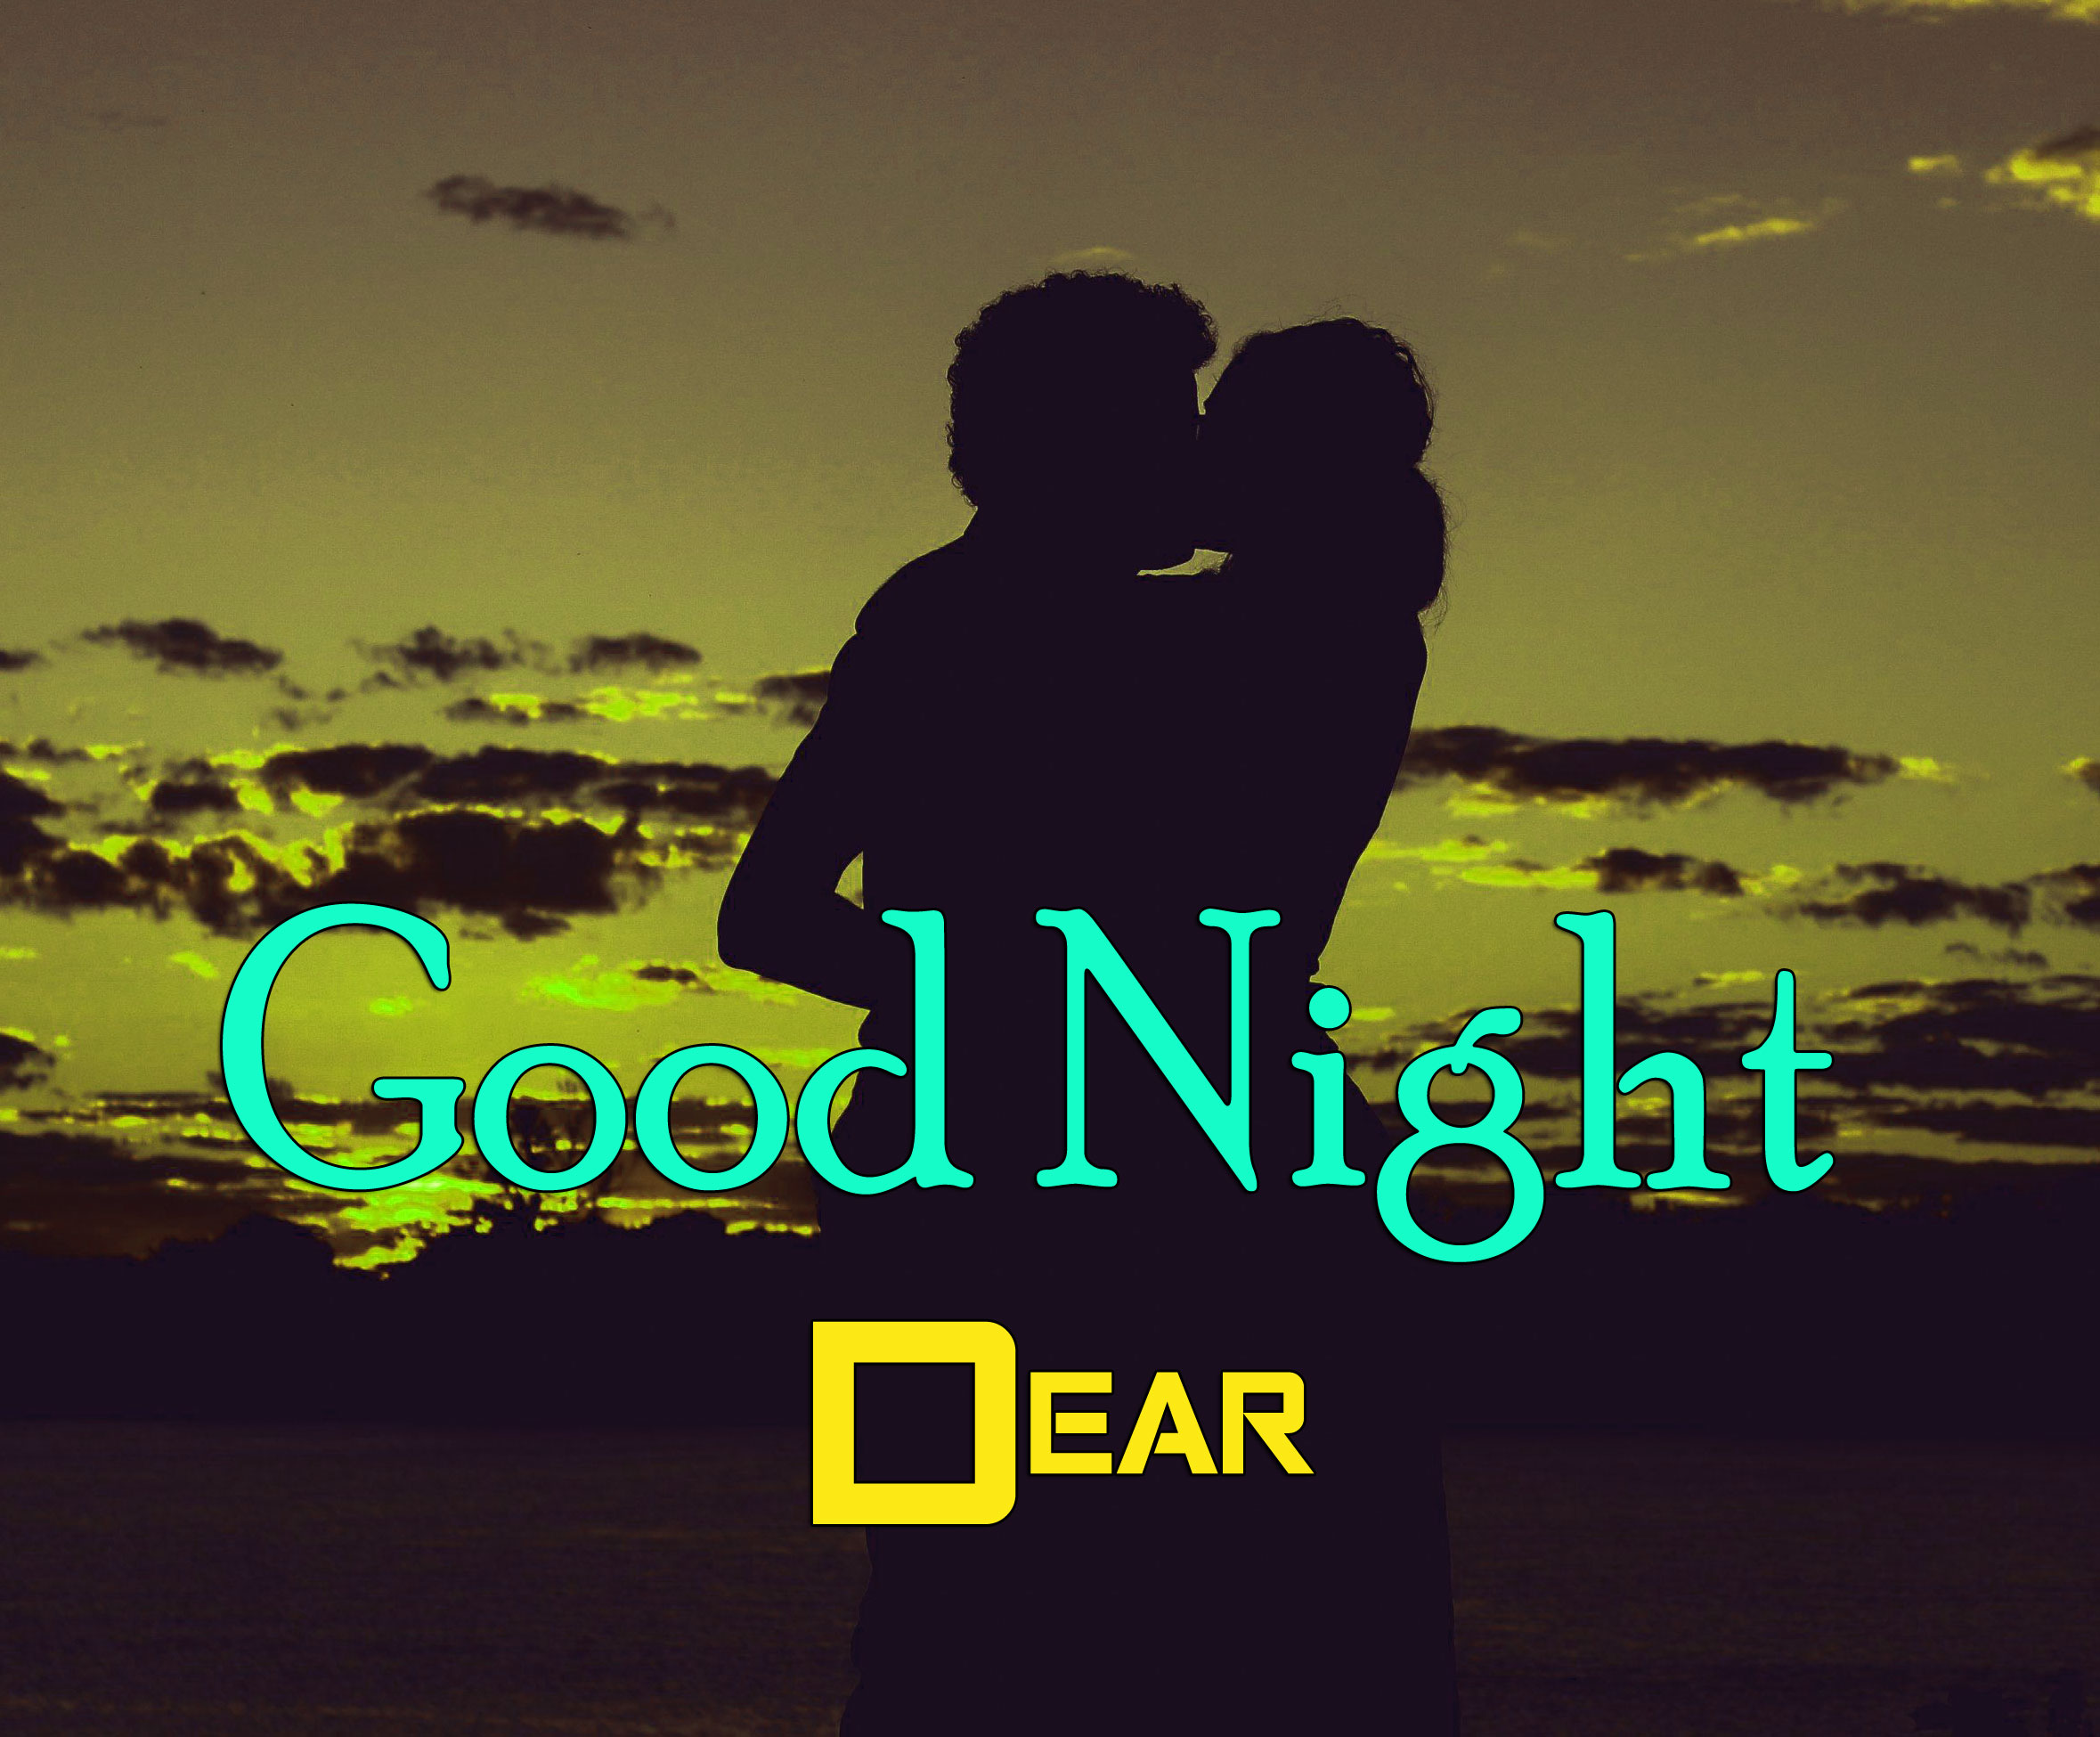 Girlfriend Good Night Wishes Wallpaper Free Download